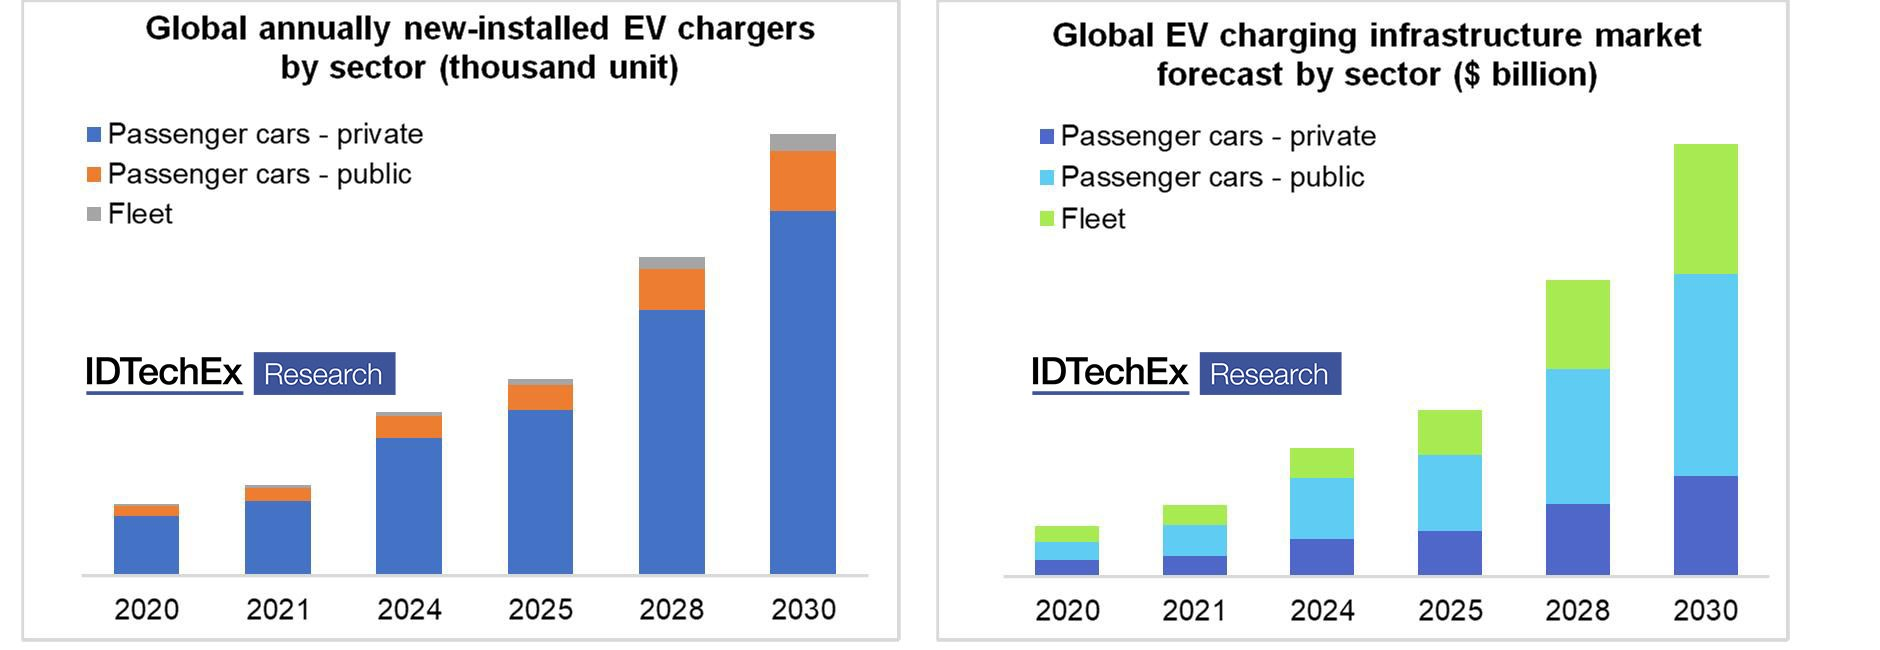 The key for Electric Vehicle take-off